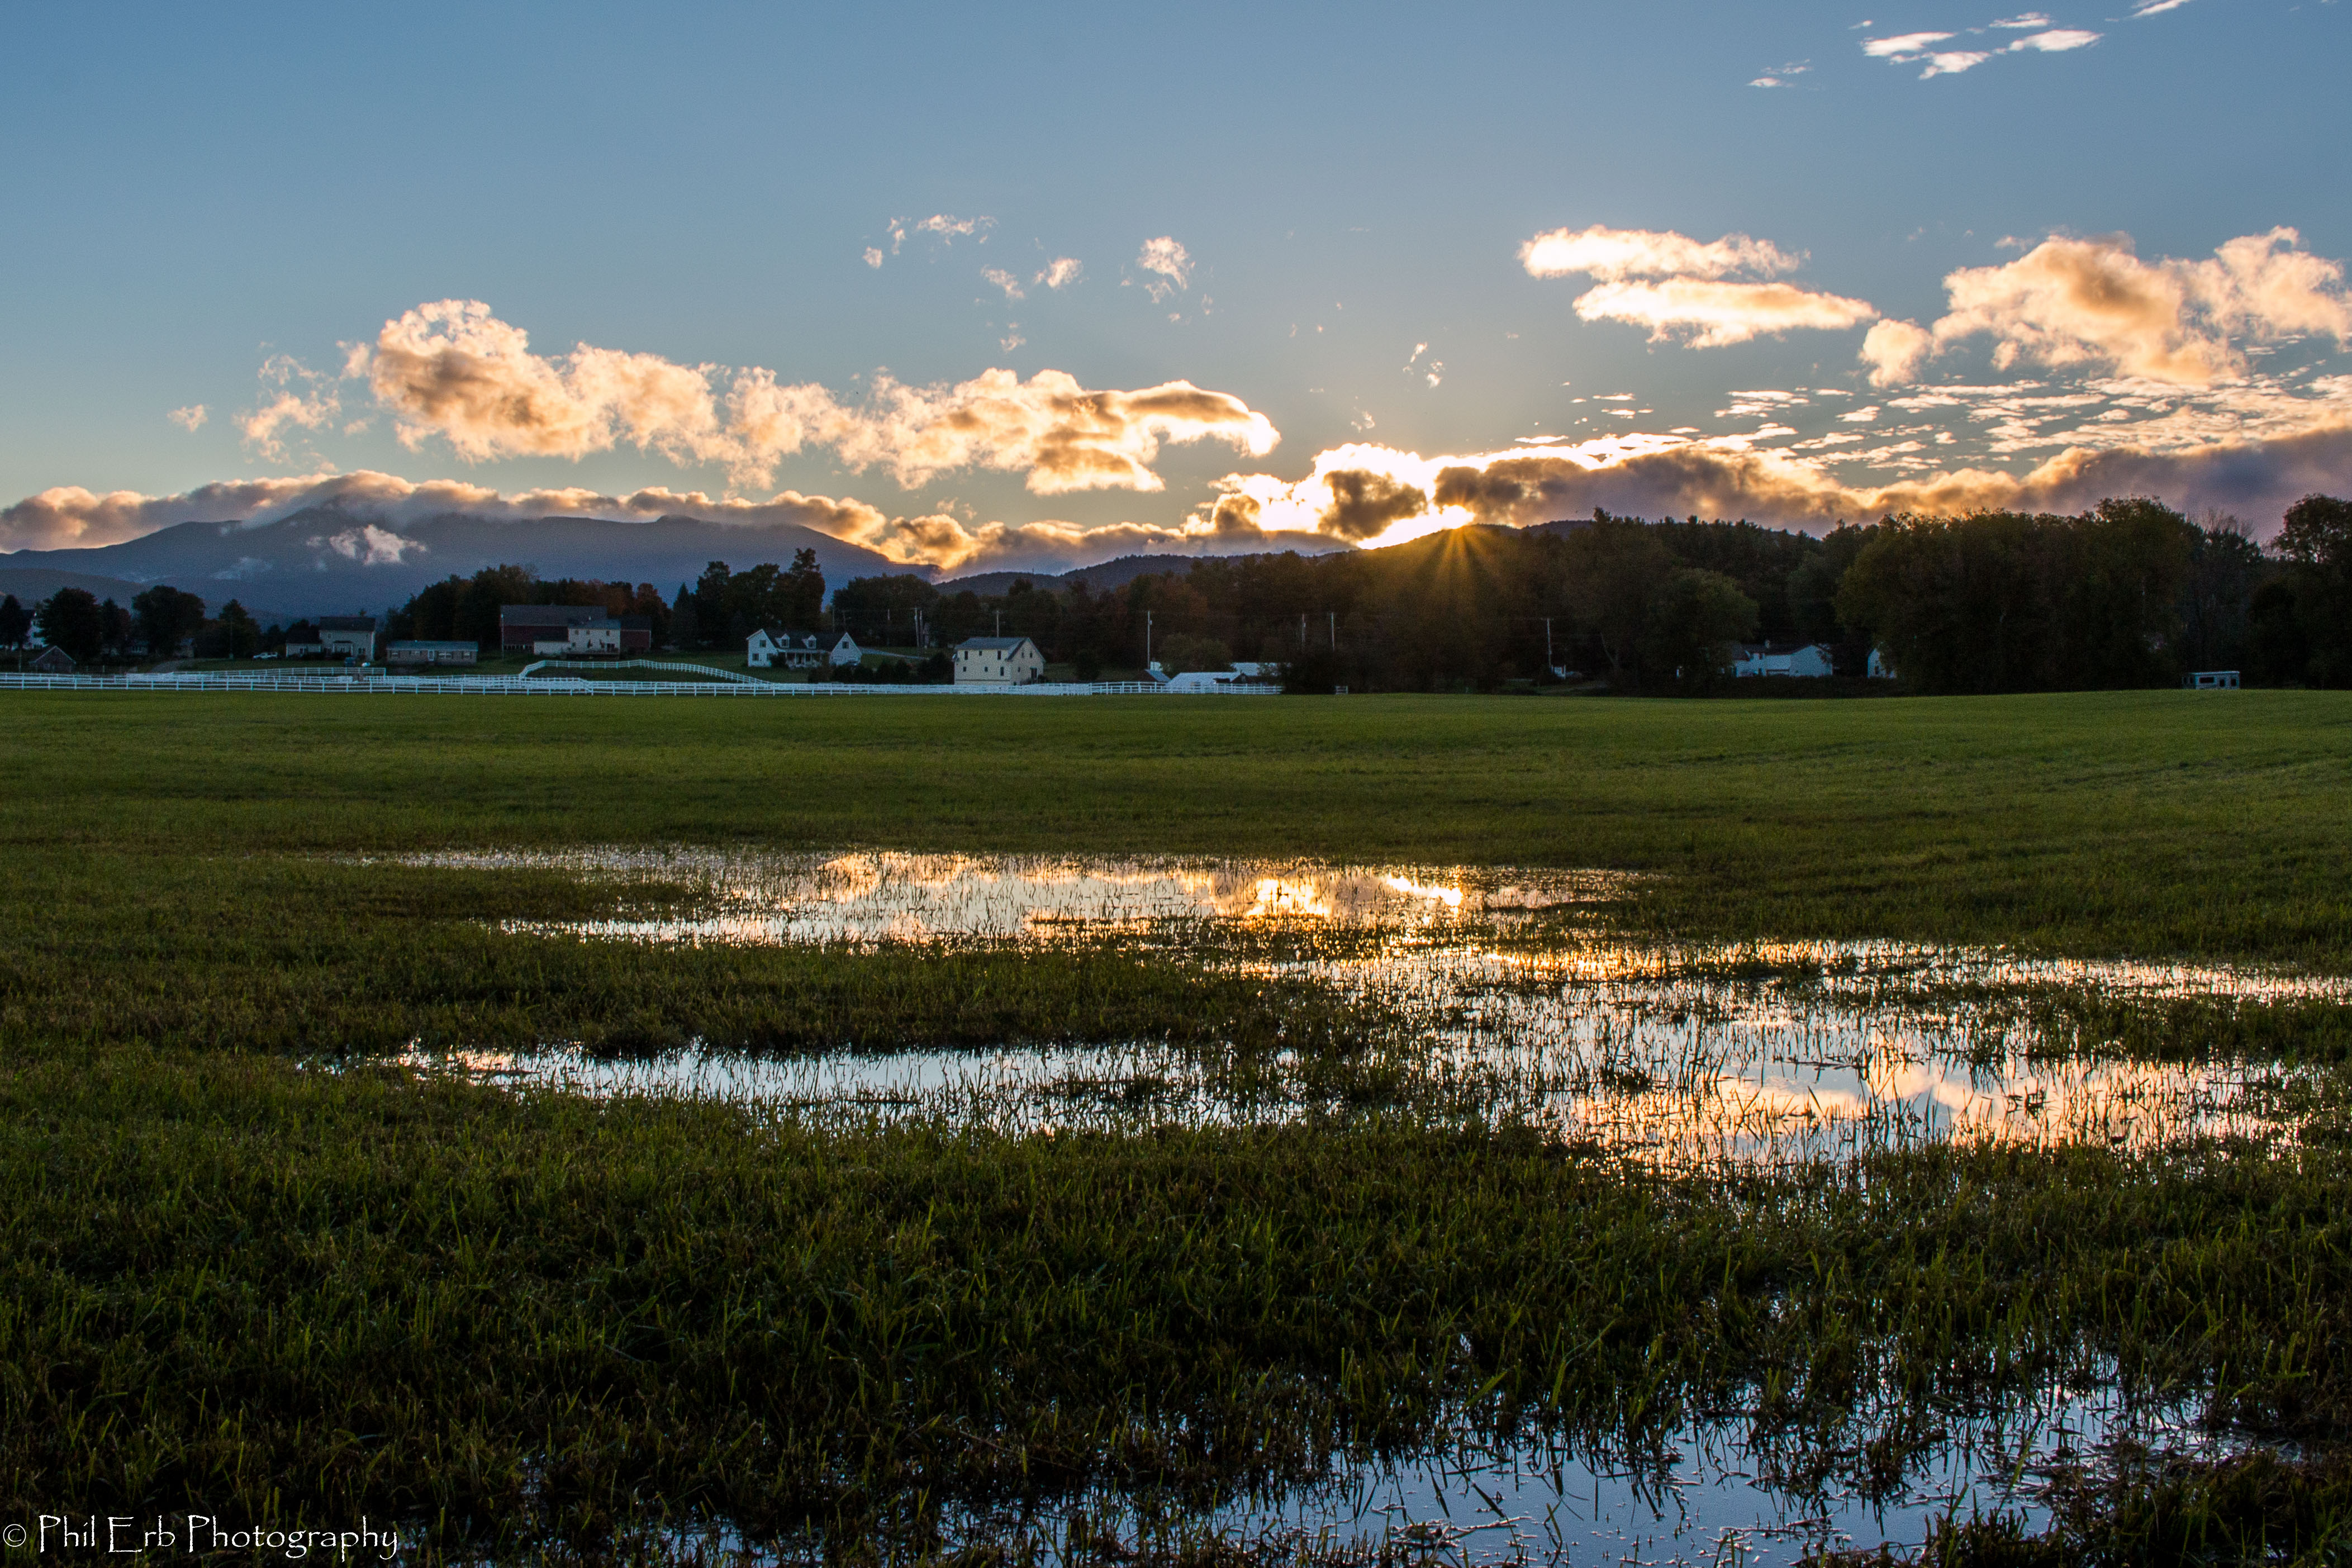 Suns Rays Over Mt Mansfield Phil Erb Photography